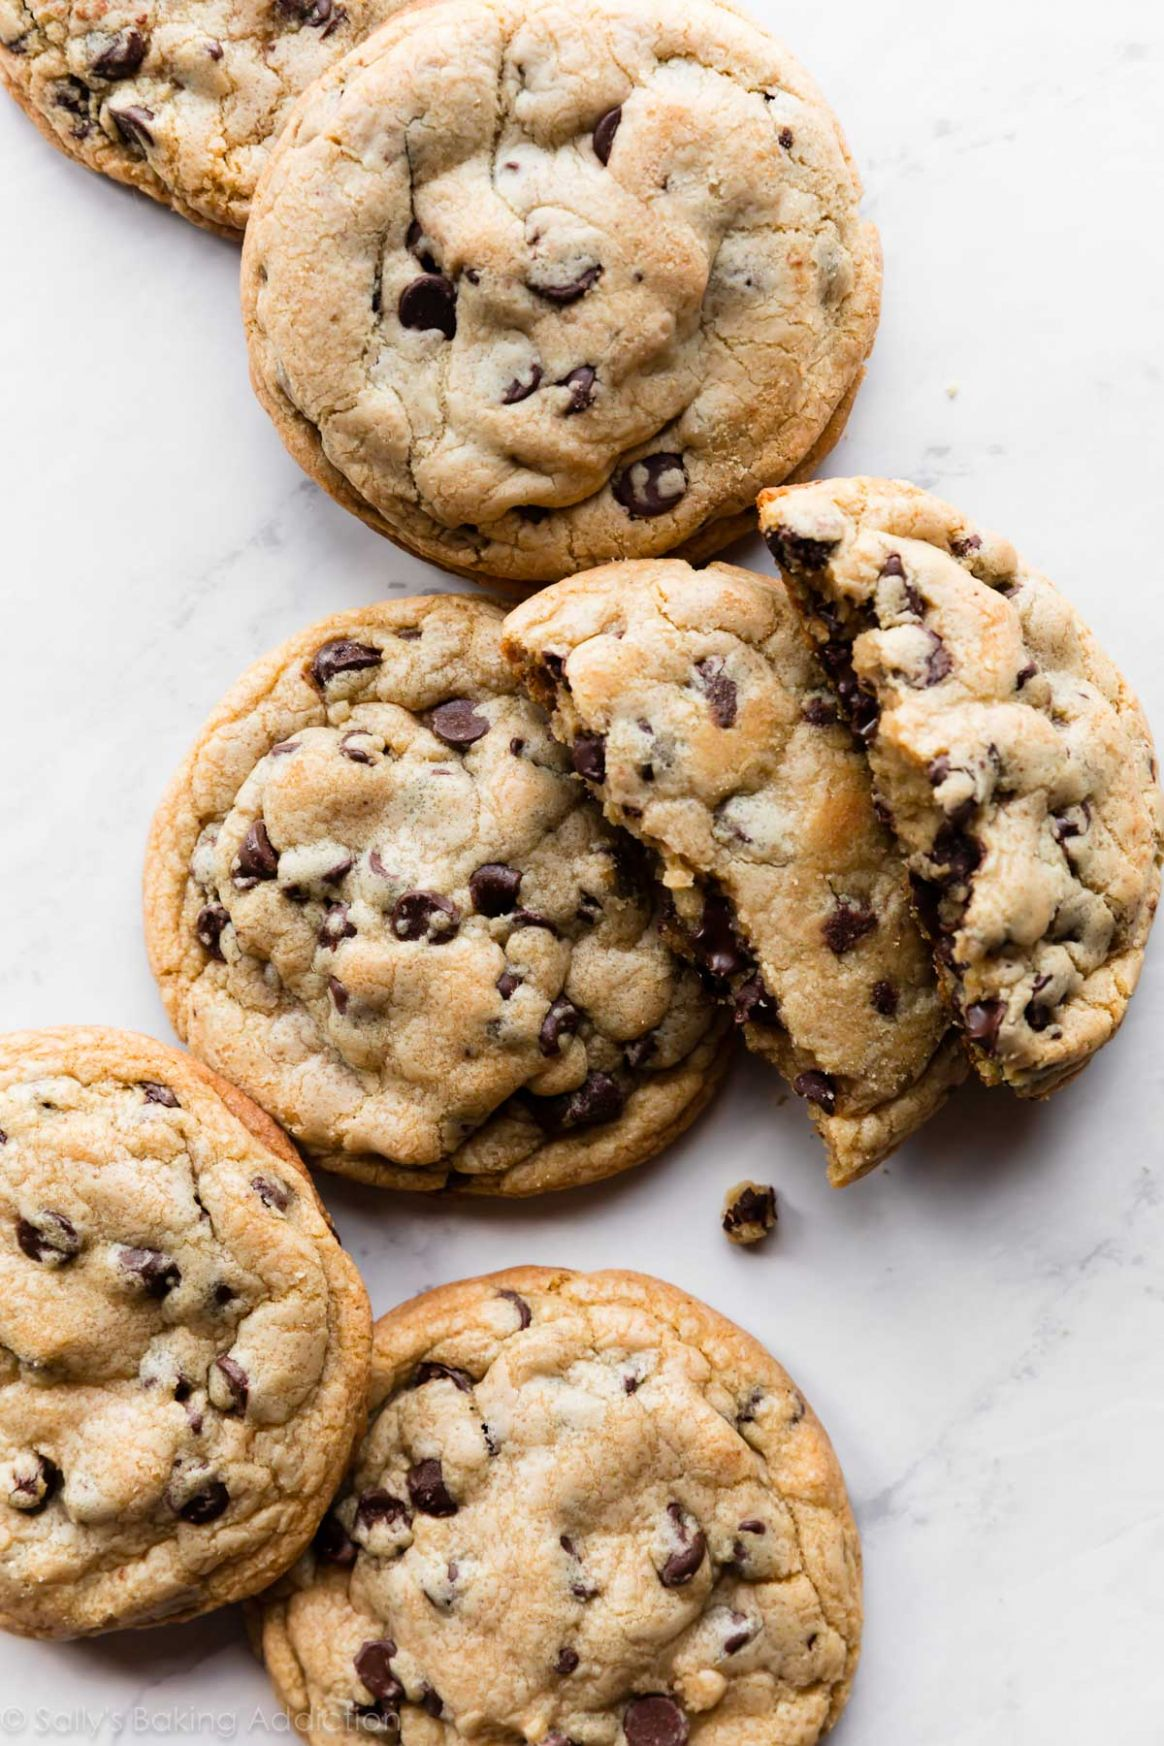 12 Giant Chocolate Chip Cookies